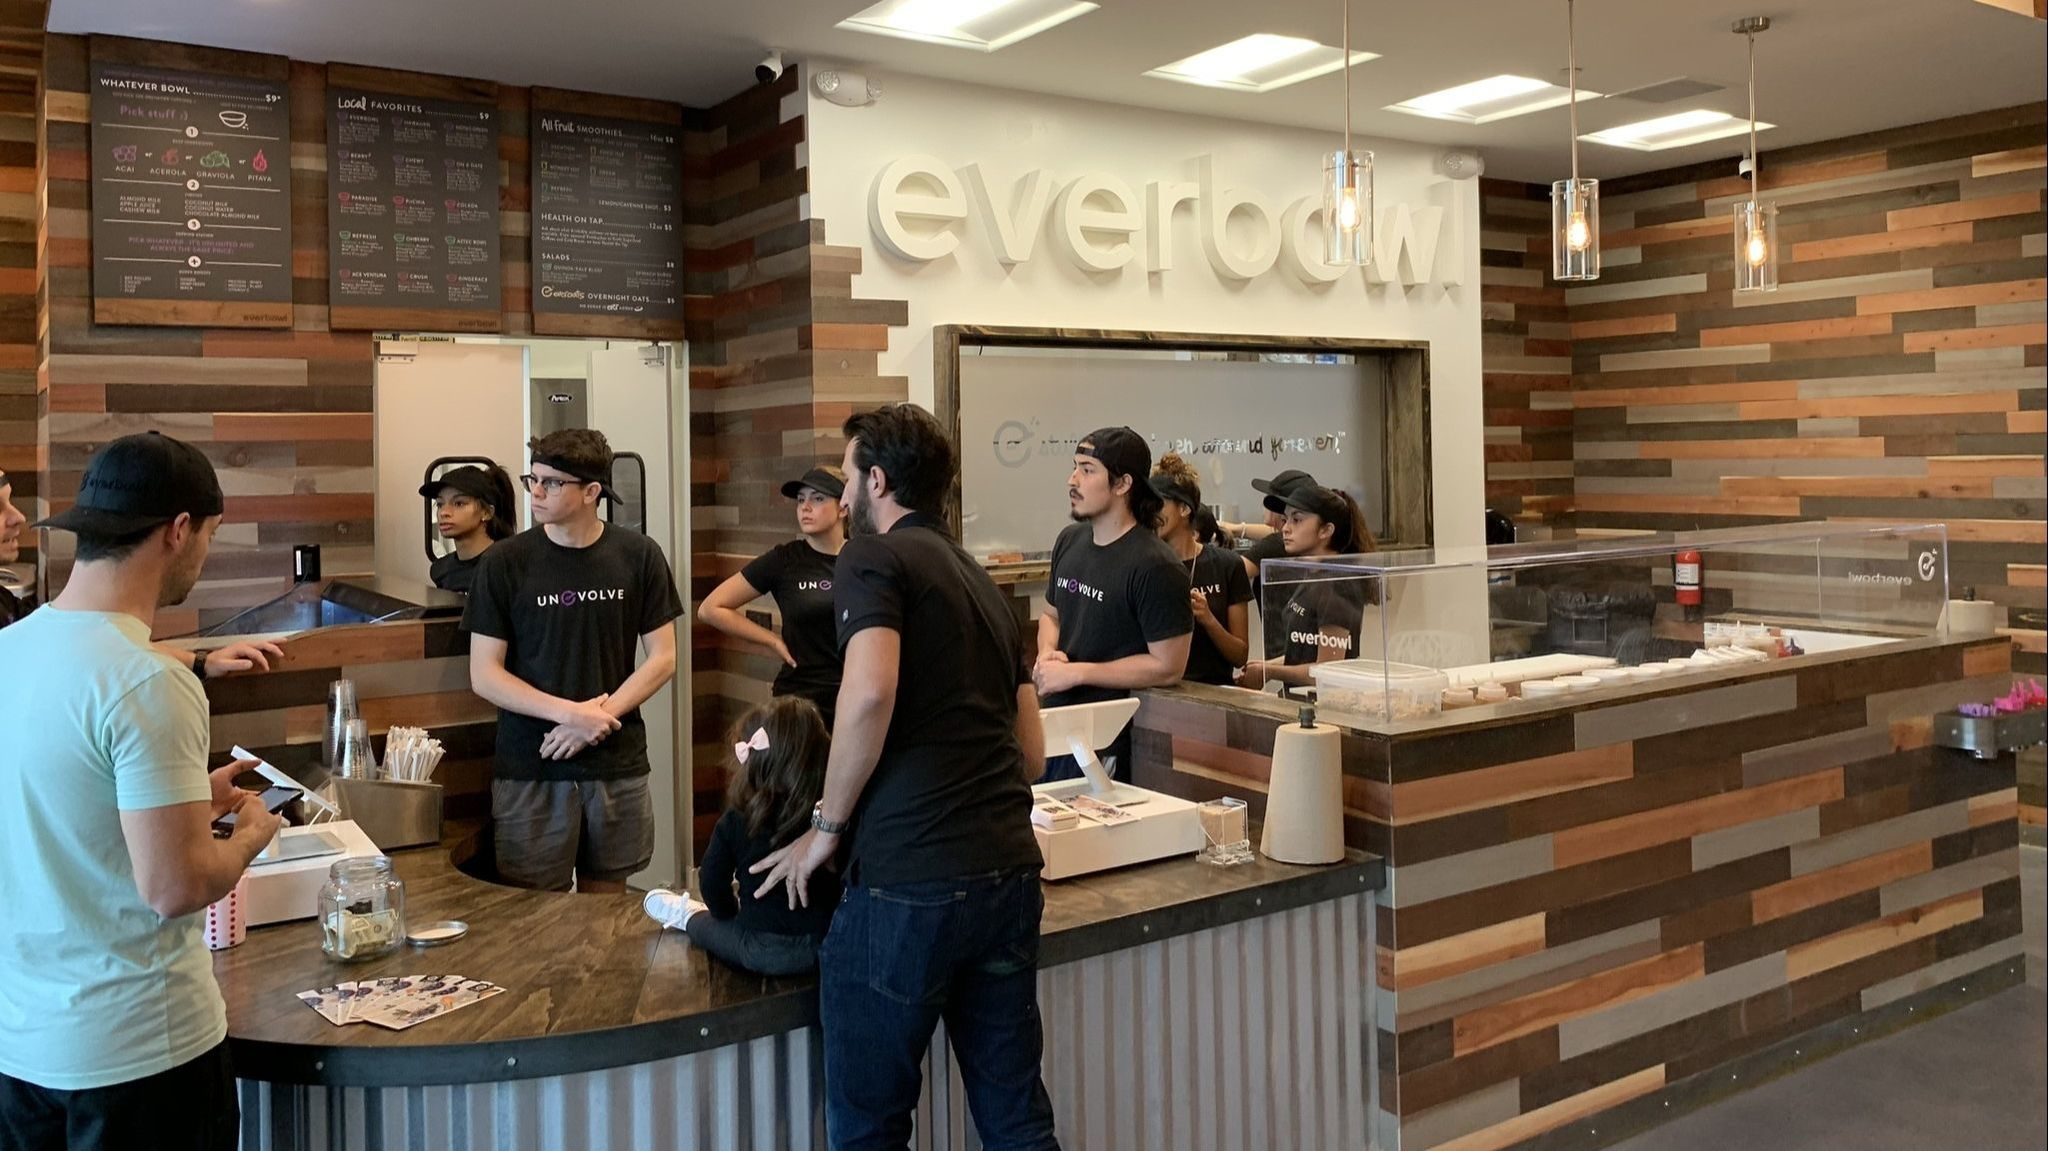 Superfood craze driving Everbowl's rapid ascent. Acai anyone?